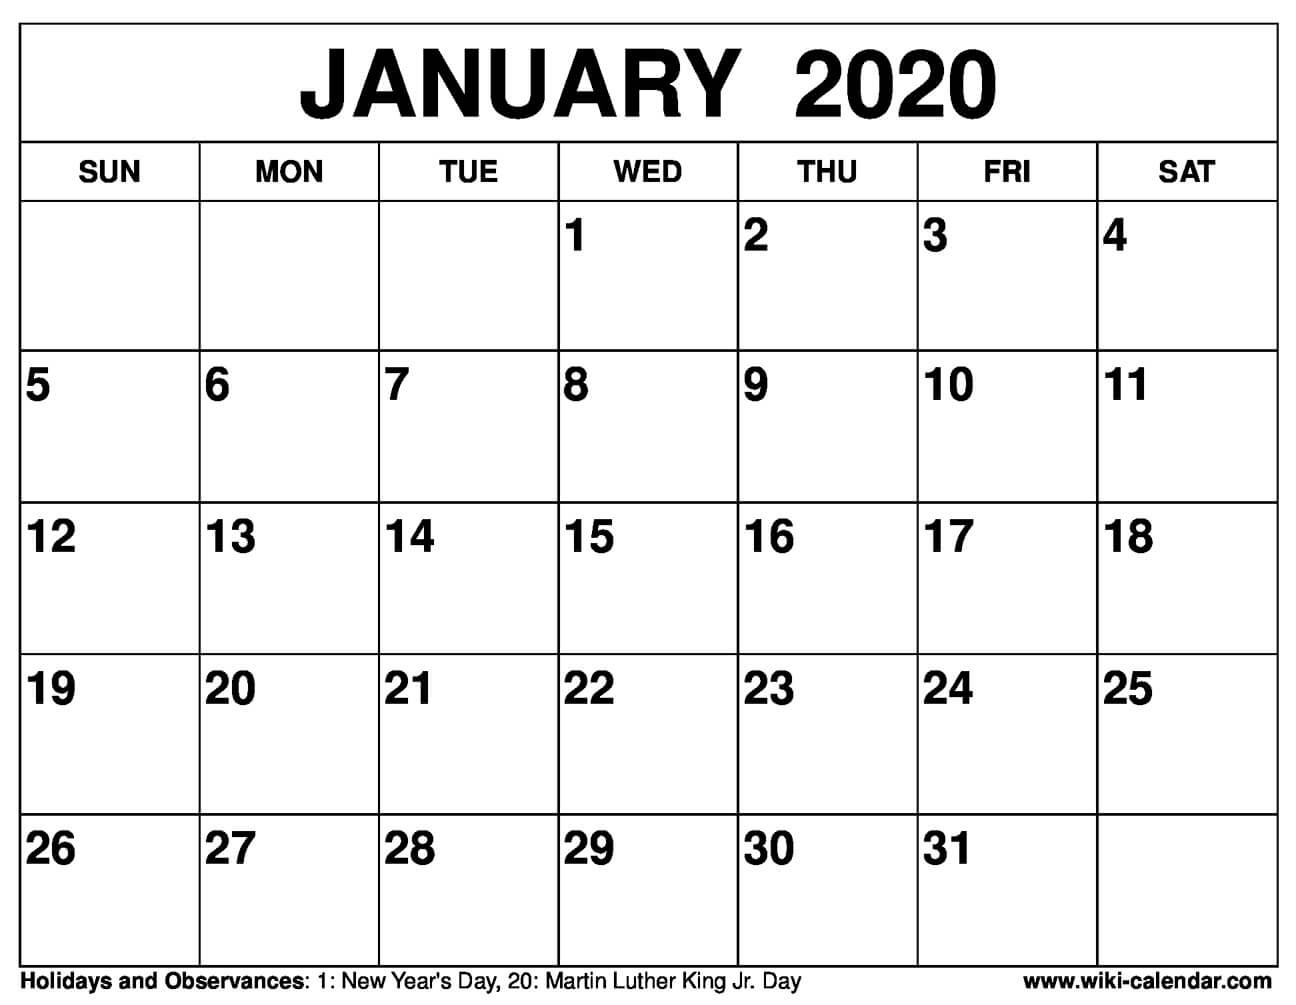 Free Printable January 2020 Calendar - Sharon Gore - Medium